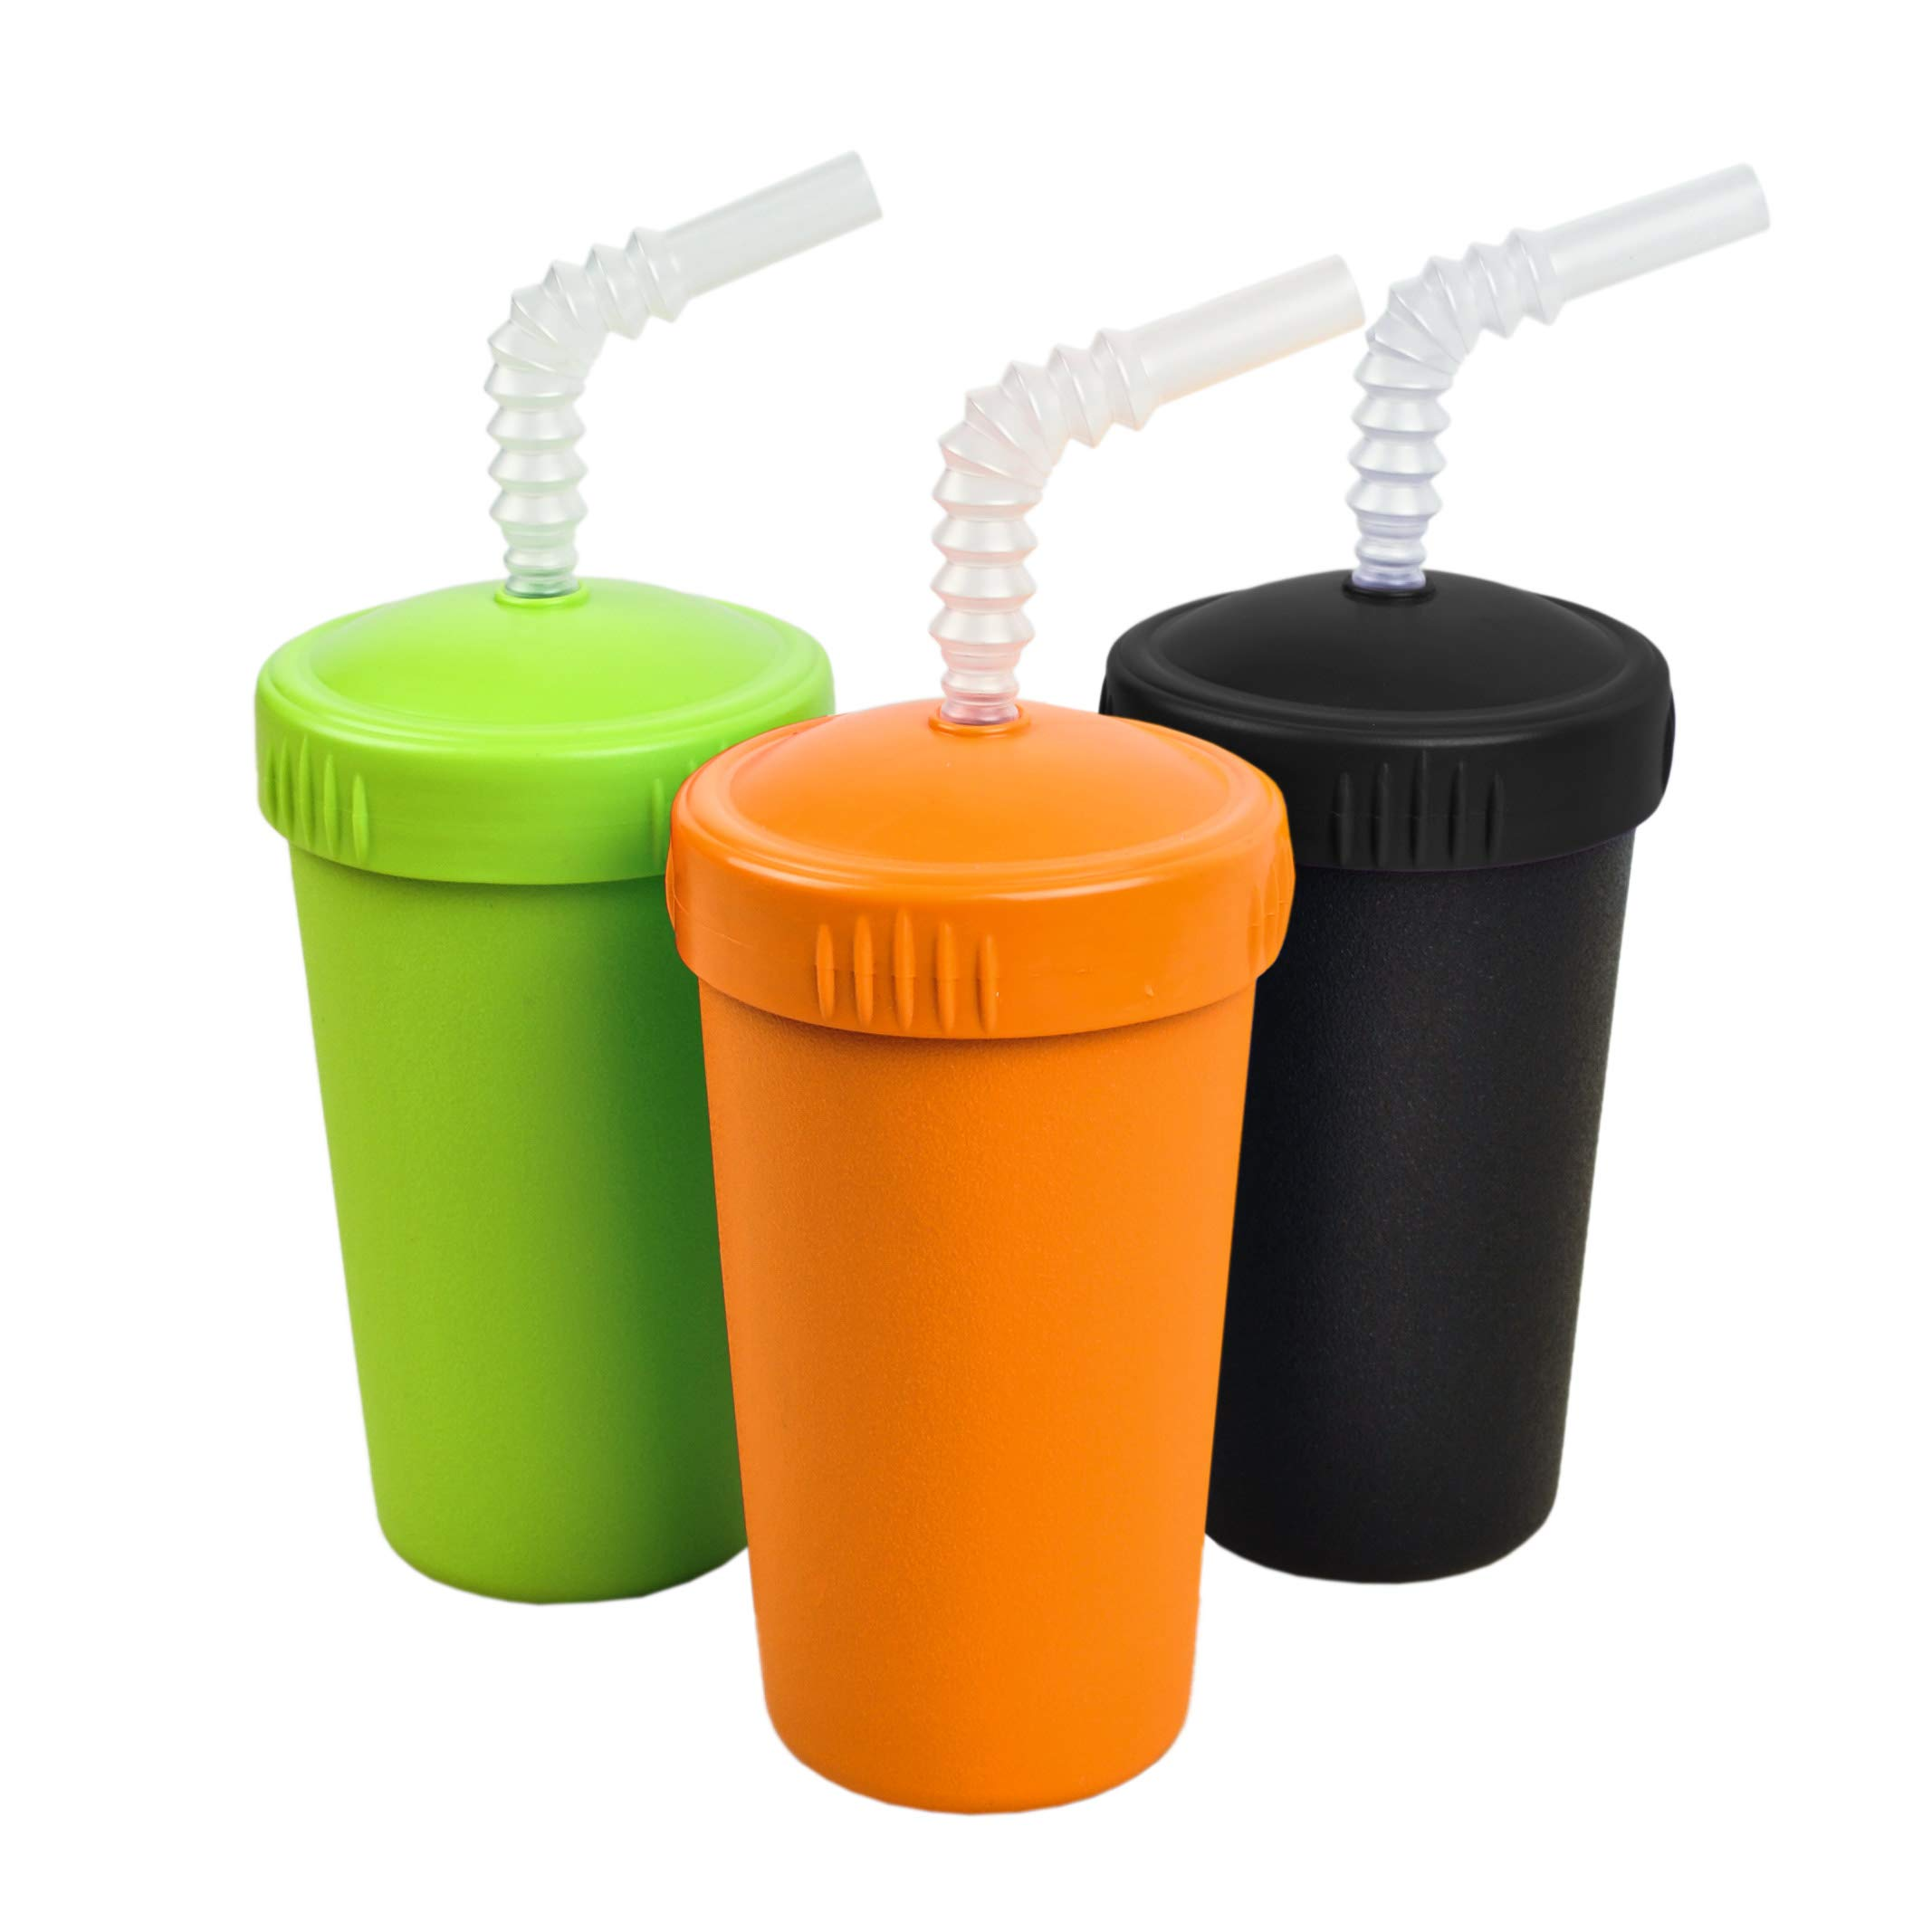 Re-Play Made in USA 3pk Straw Cups with Reversable Straw for Easy Baby, Toddler, Child Feeding - Orange, Black, Lime (Halloween)